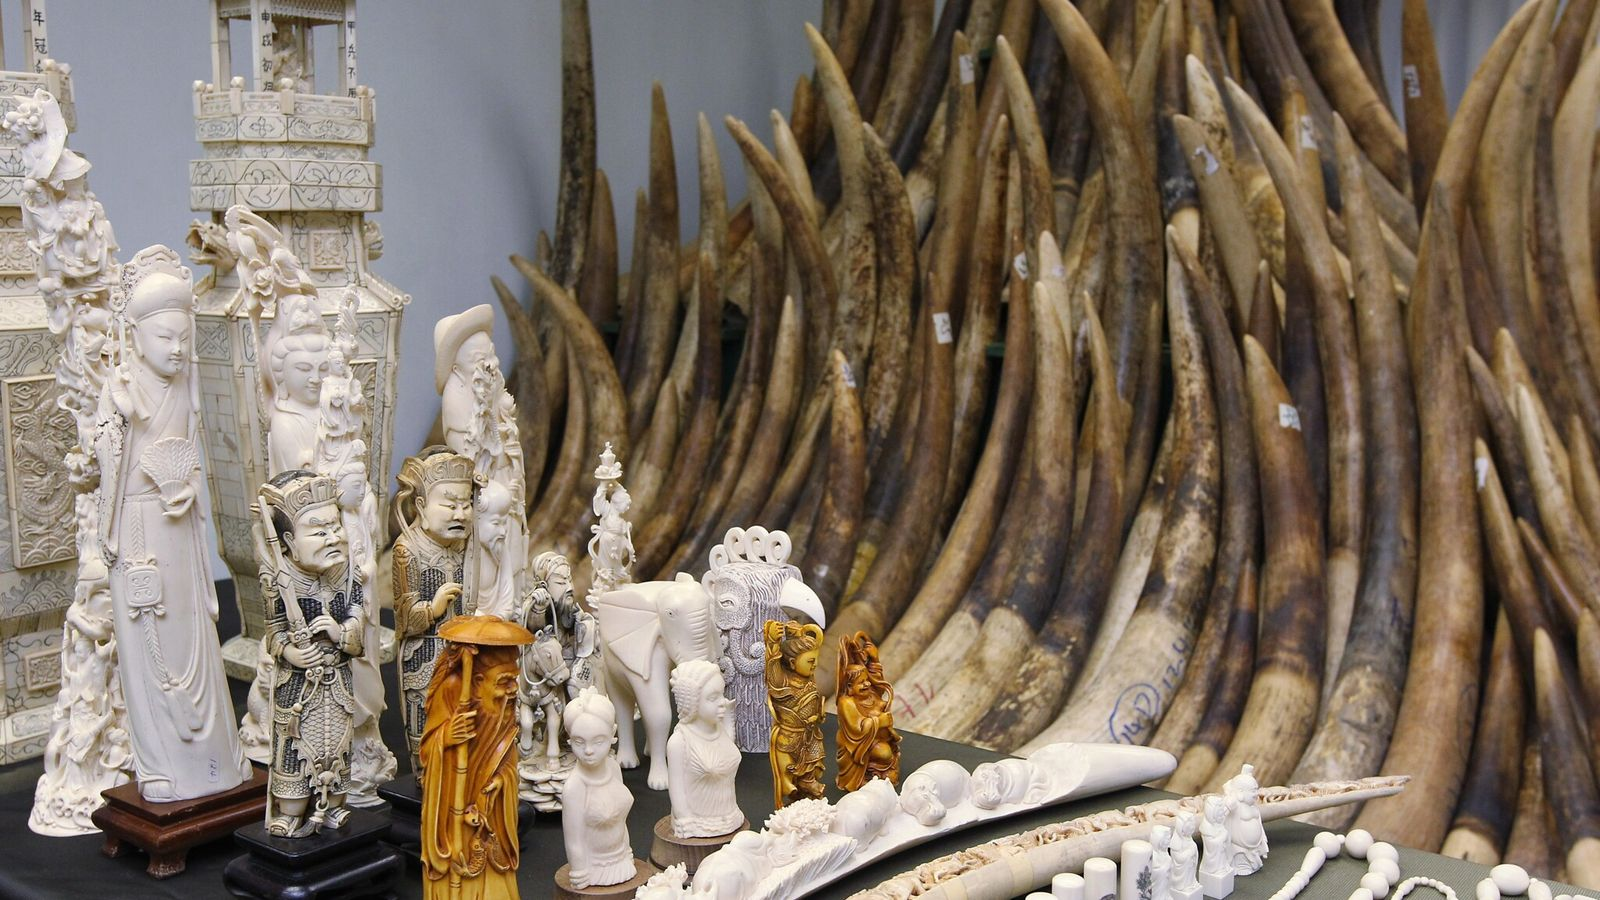 Illegal ivory from elephants, rhinos, and other animals is in demand for the production of carved ...